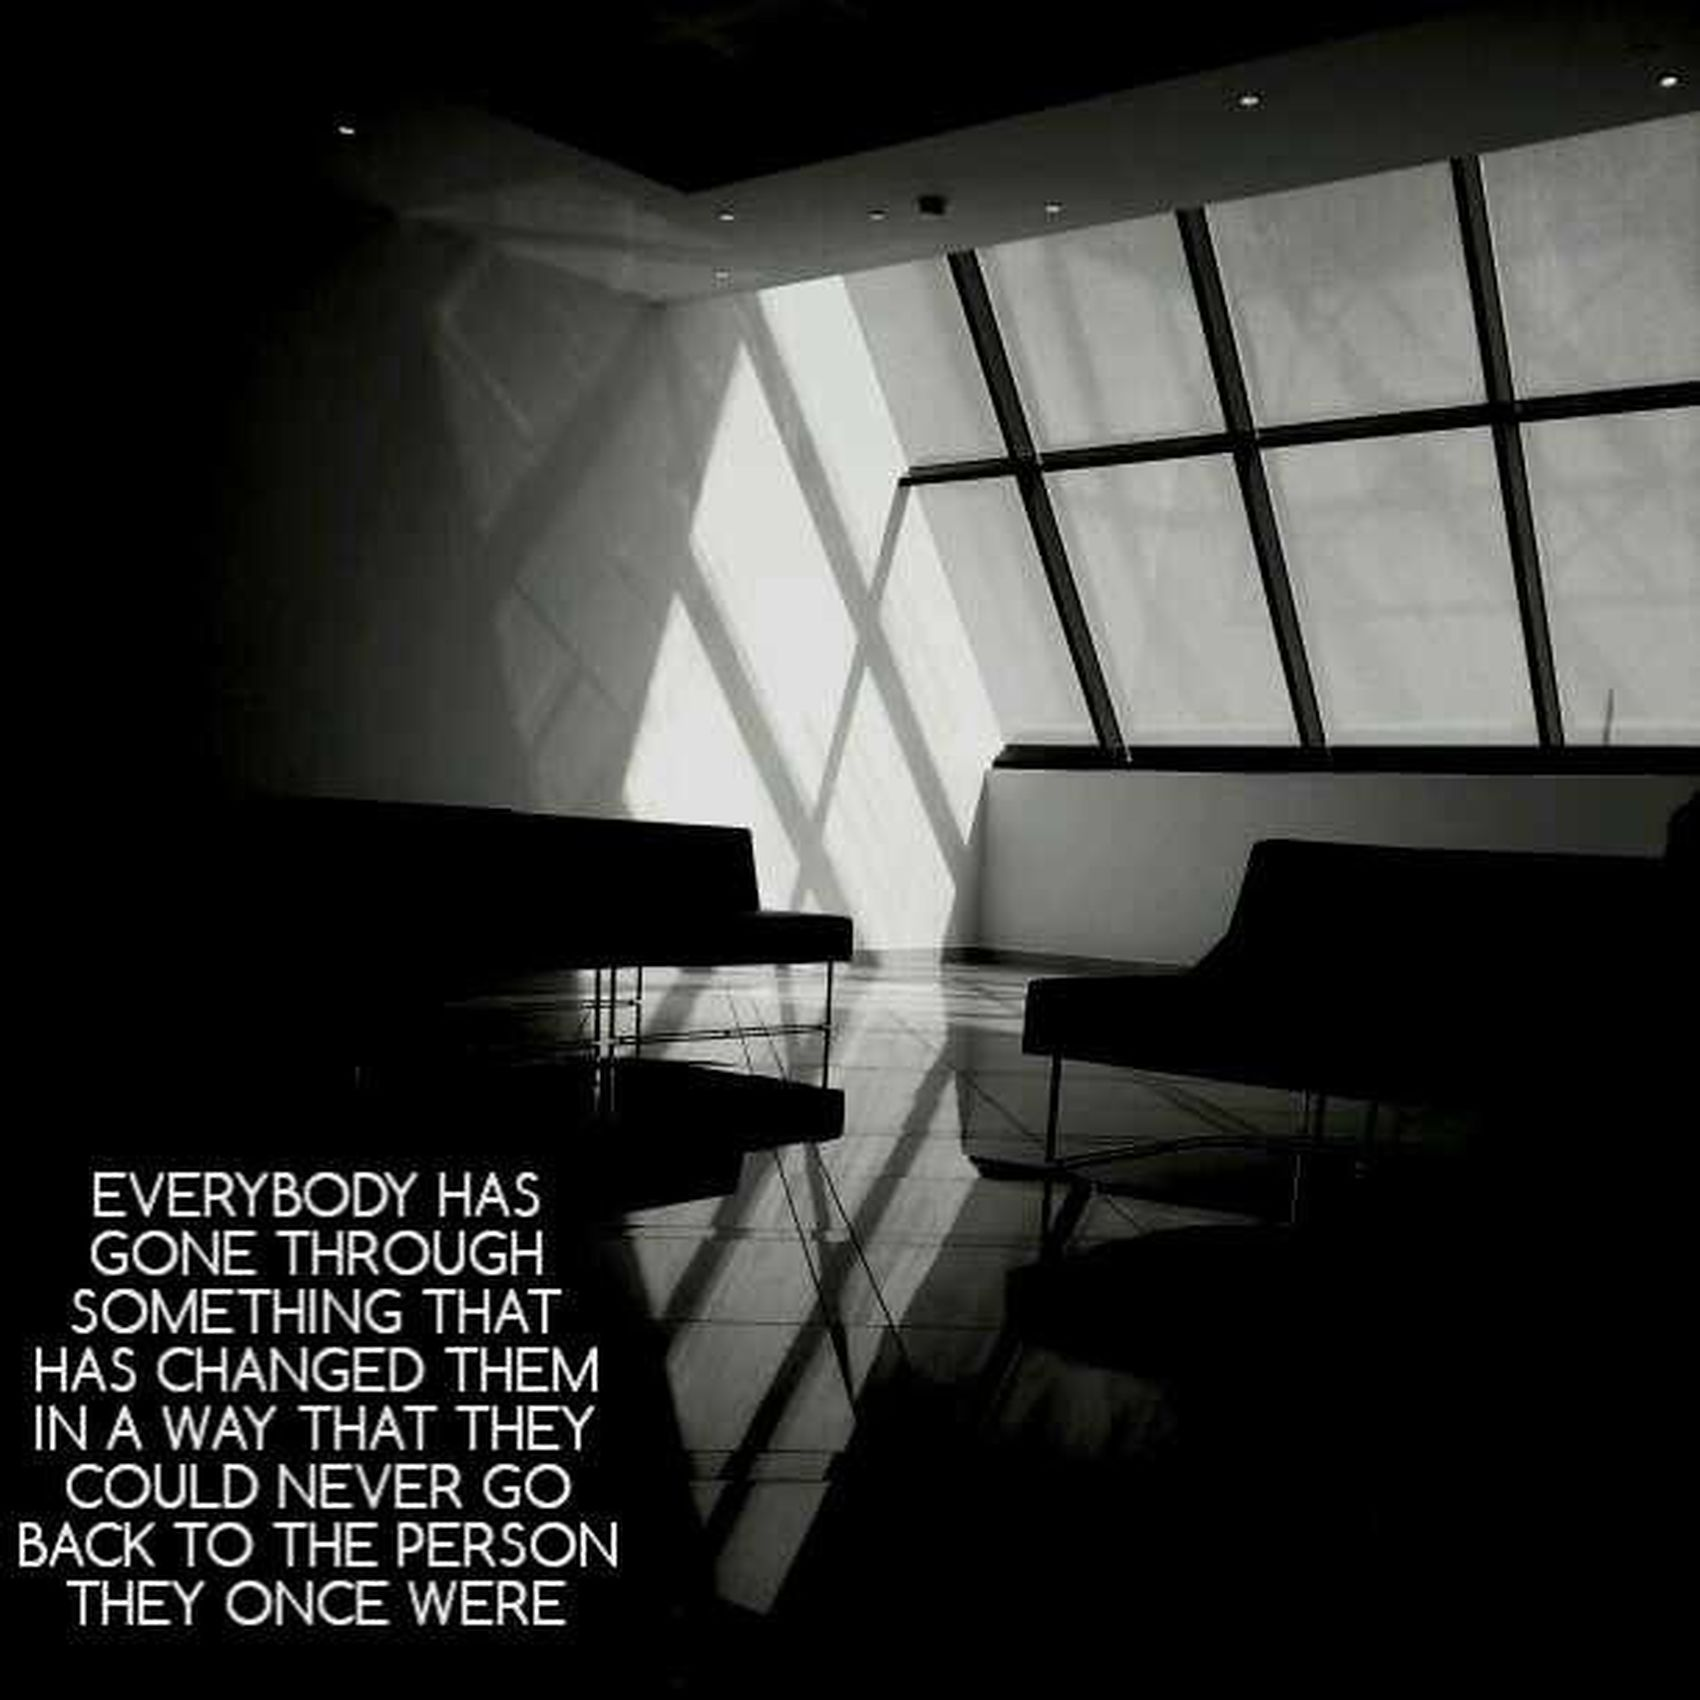 ' Everybody has gone through something that has changed them in a way that they could never go back to the person they once were !! ?? like_it ♡ + و نقول عطلناااا !?✌ Bahrain Bored Bh Black And White